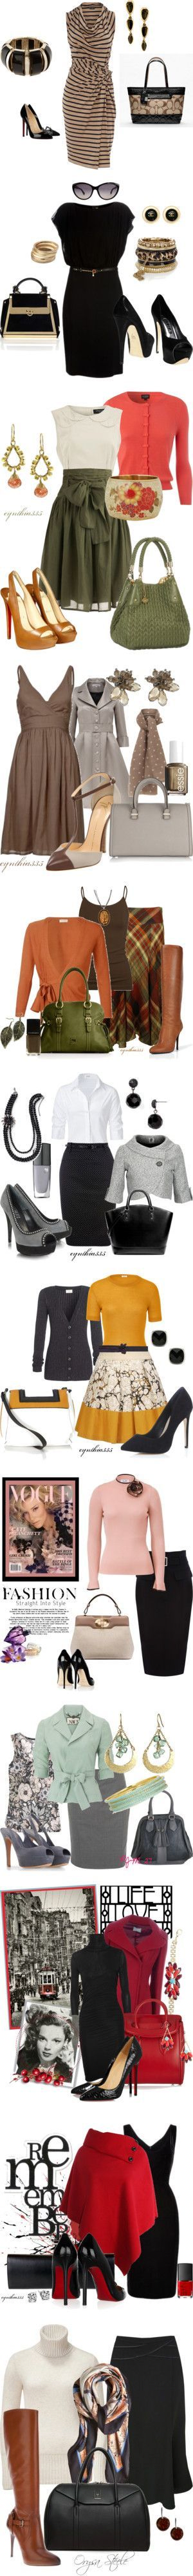 """Sunday's Best"" by esha2001 on Polyvore"